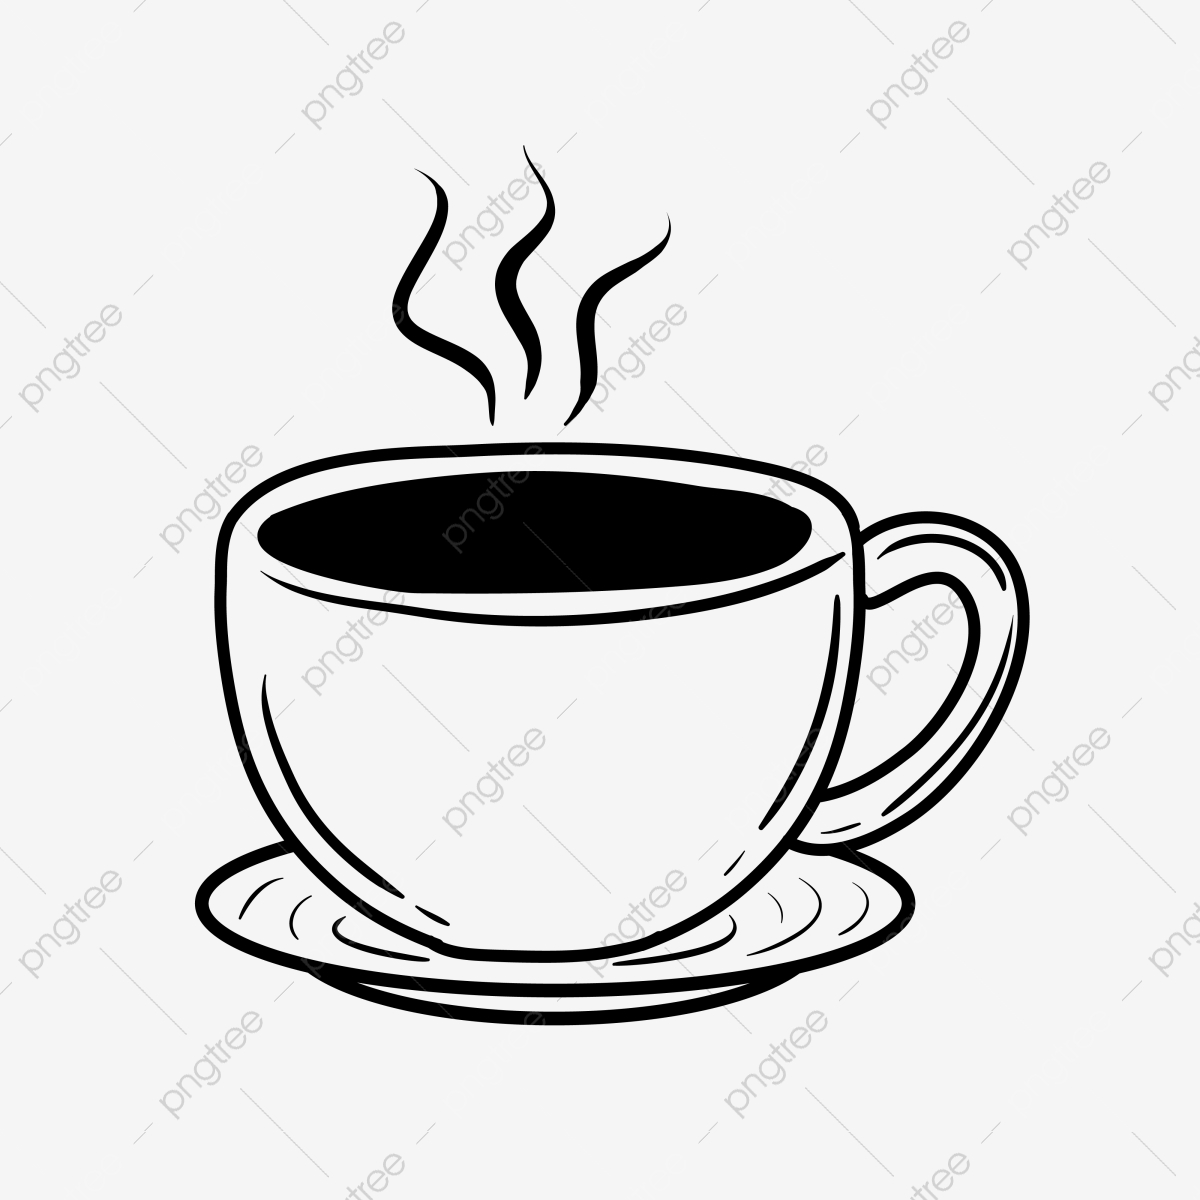 Coffee Vector Png Images Coffee Cup Coffee Shop Coffee Aroma Vectors In Ai Eps Format Free Download On Pngtree